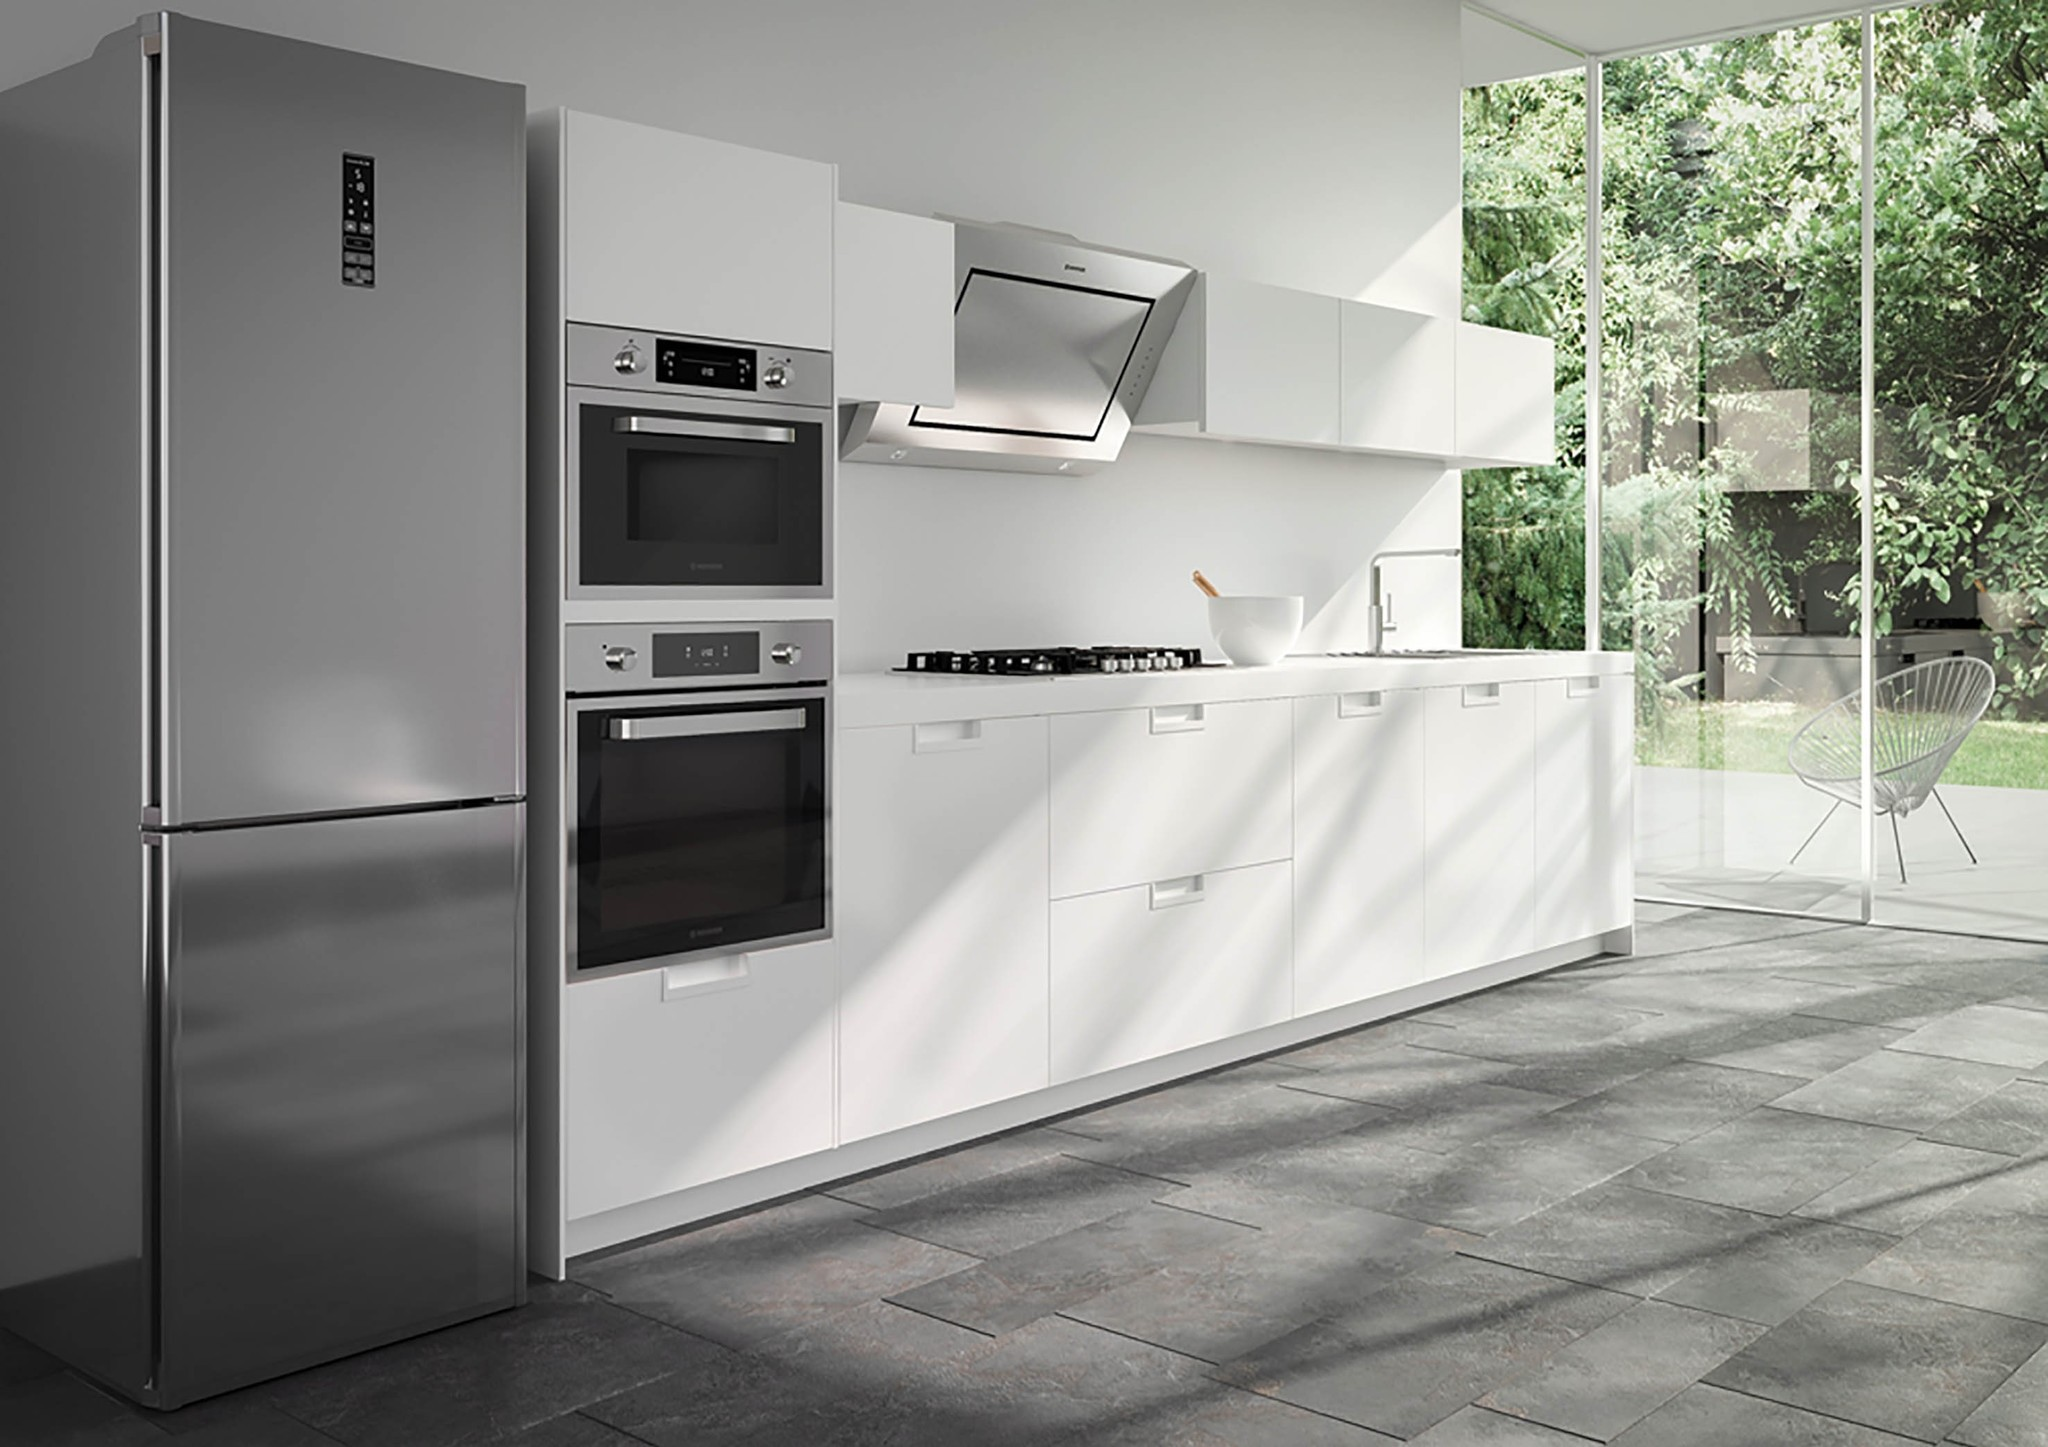 Artificial intelligence is becoming a common feature in home appliances.